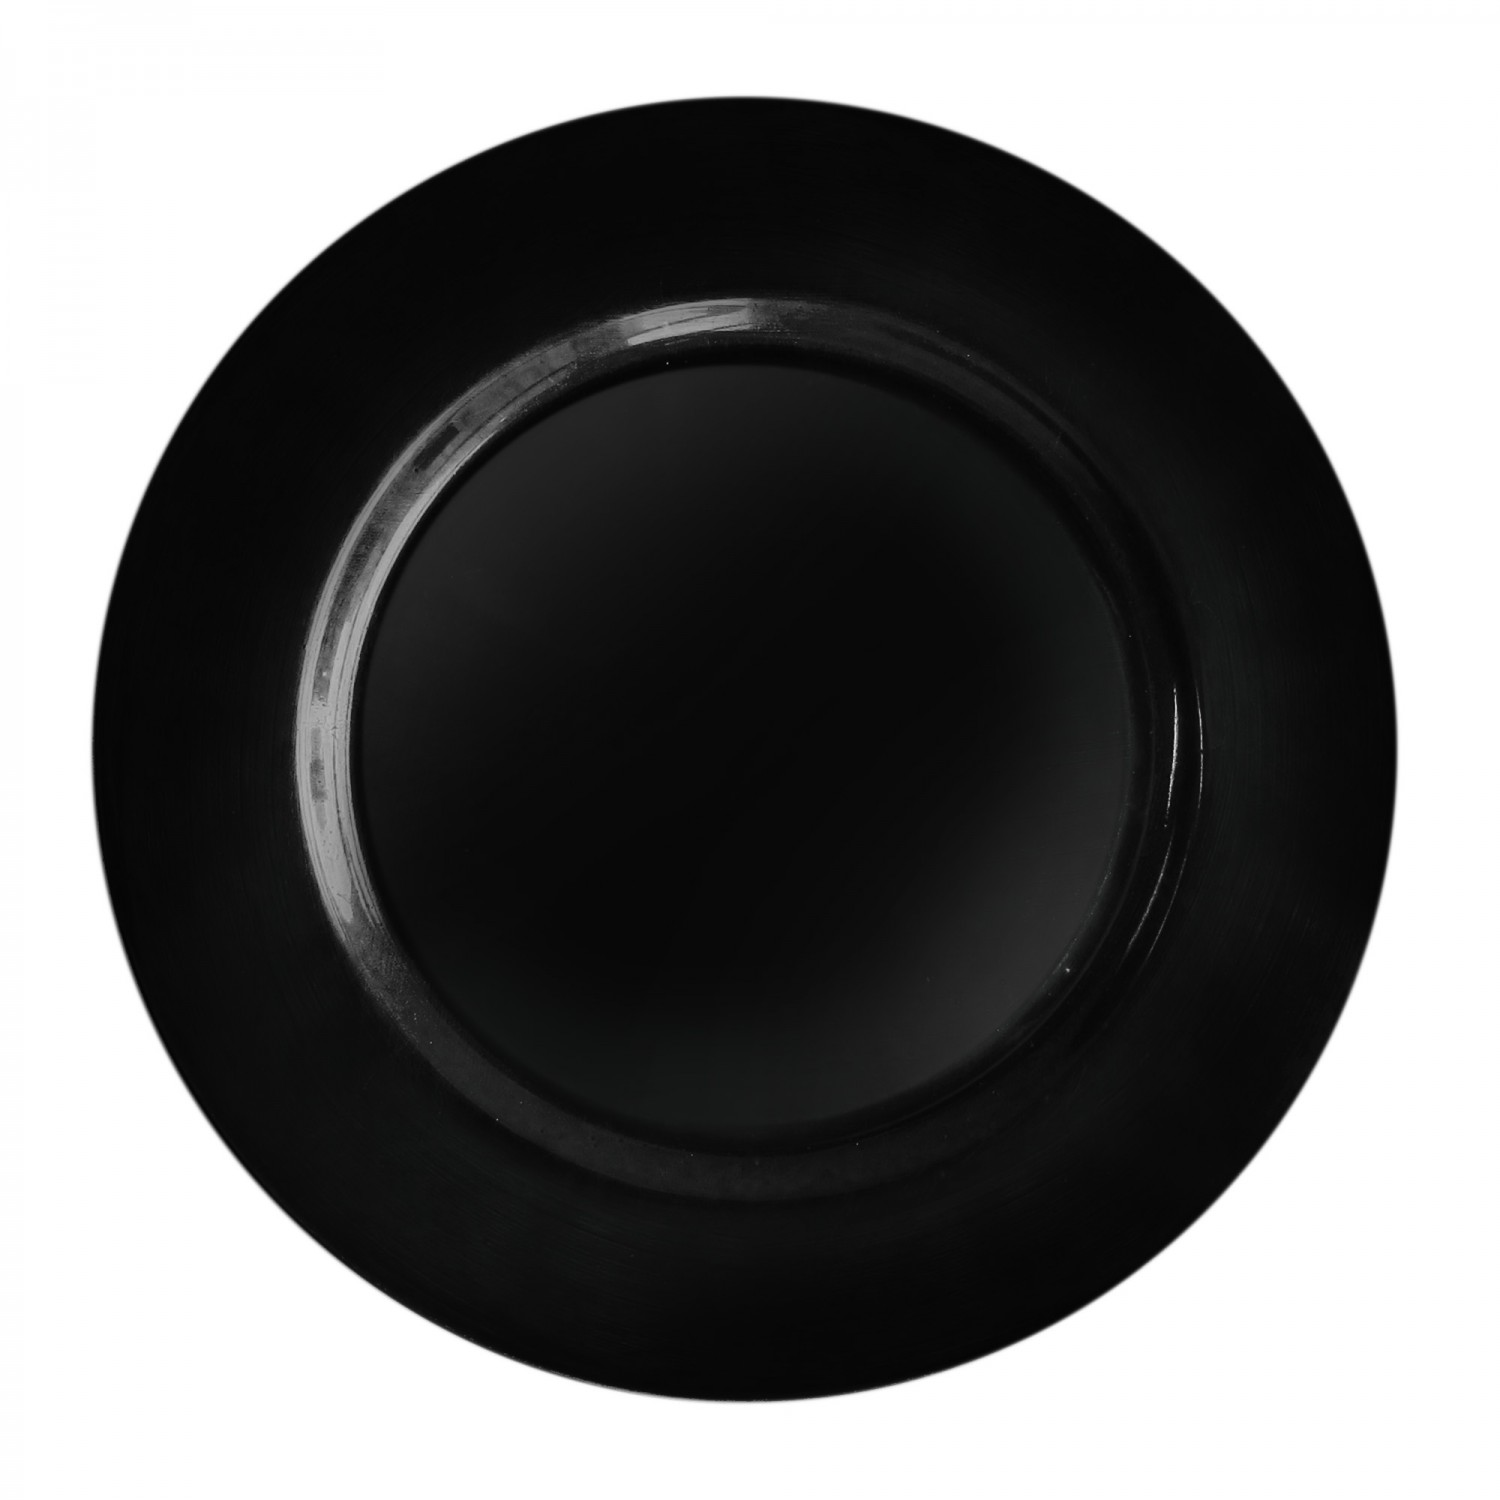 sc 1 st  TigerChef & The Jay Companies 1270028 Round Black Melamine Charger Plate 13